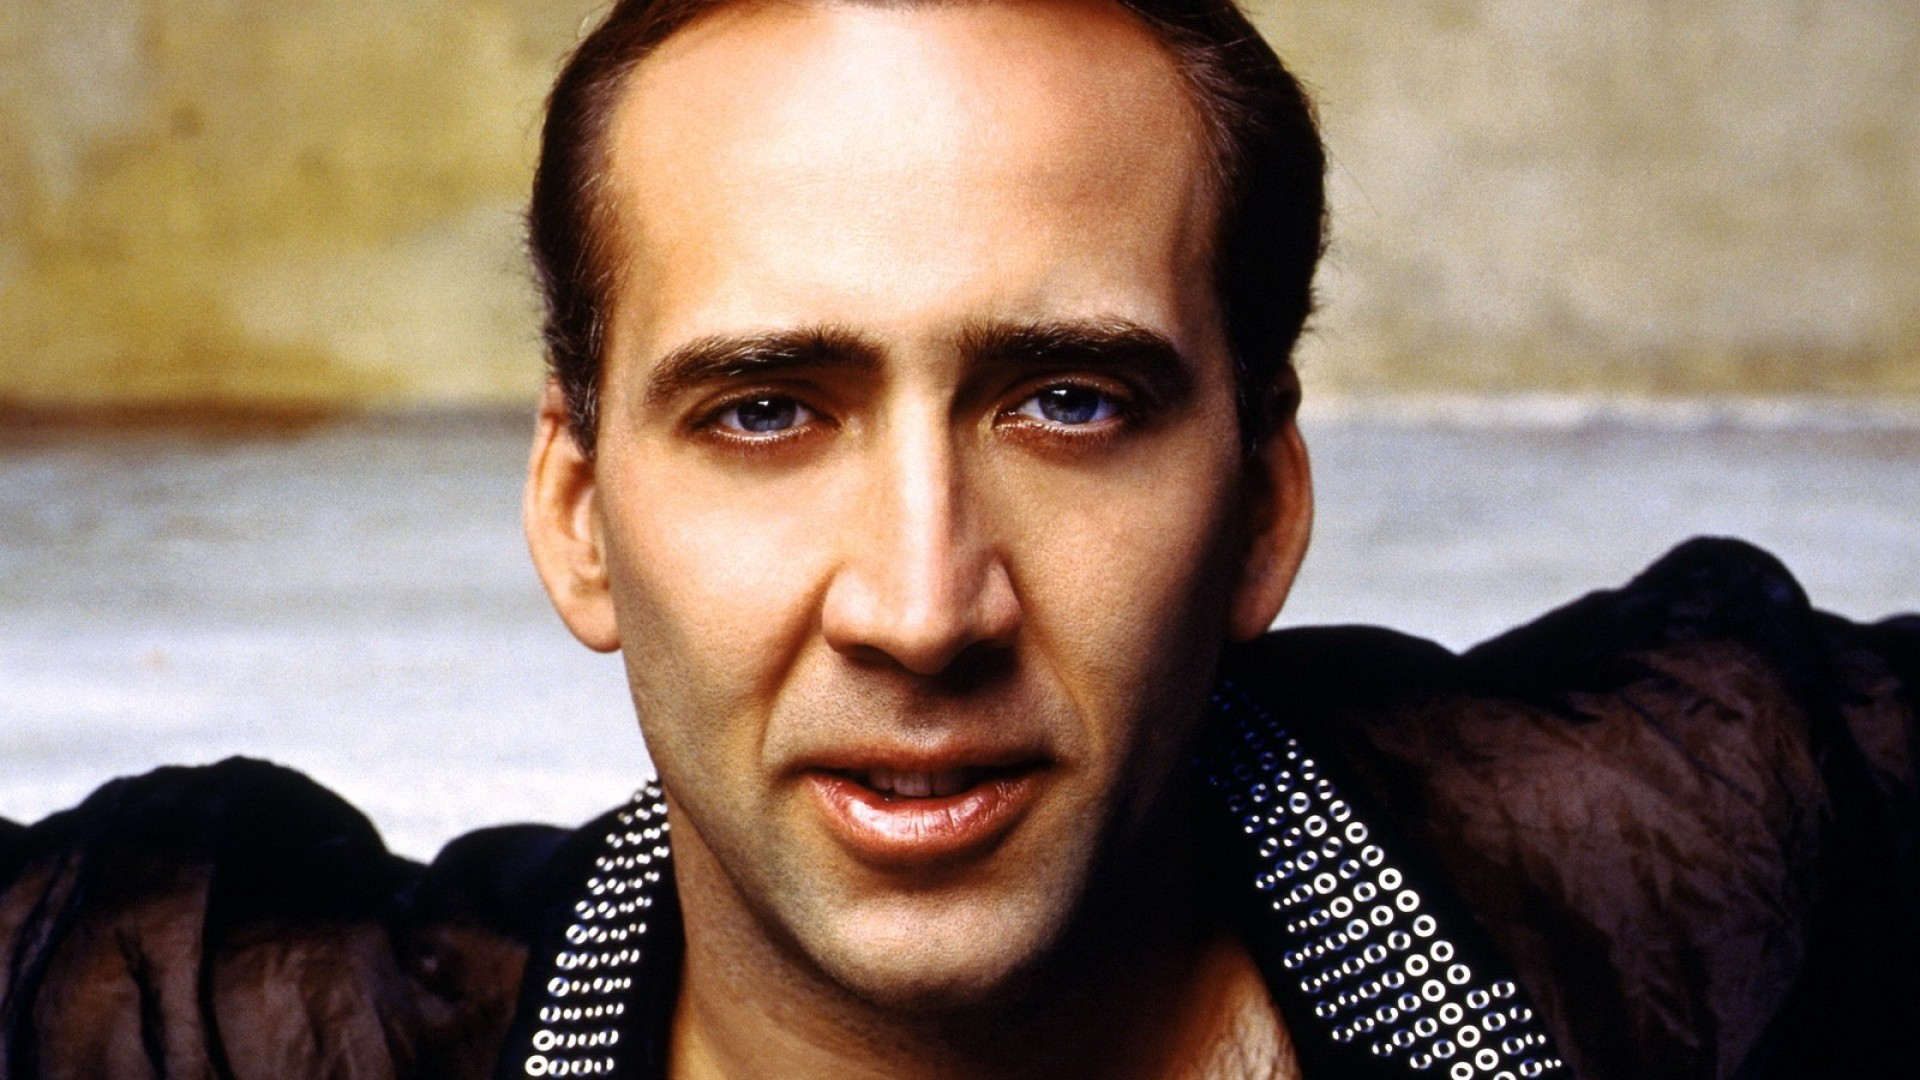 Nicolas Cage Wallpaper 1920x1080